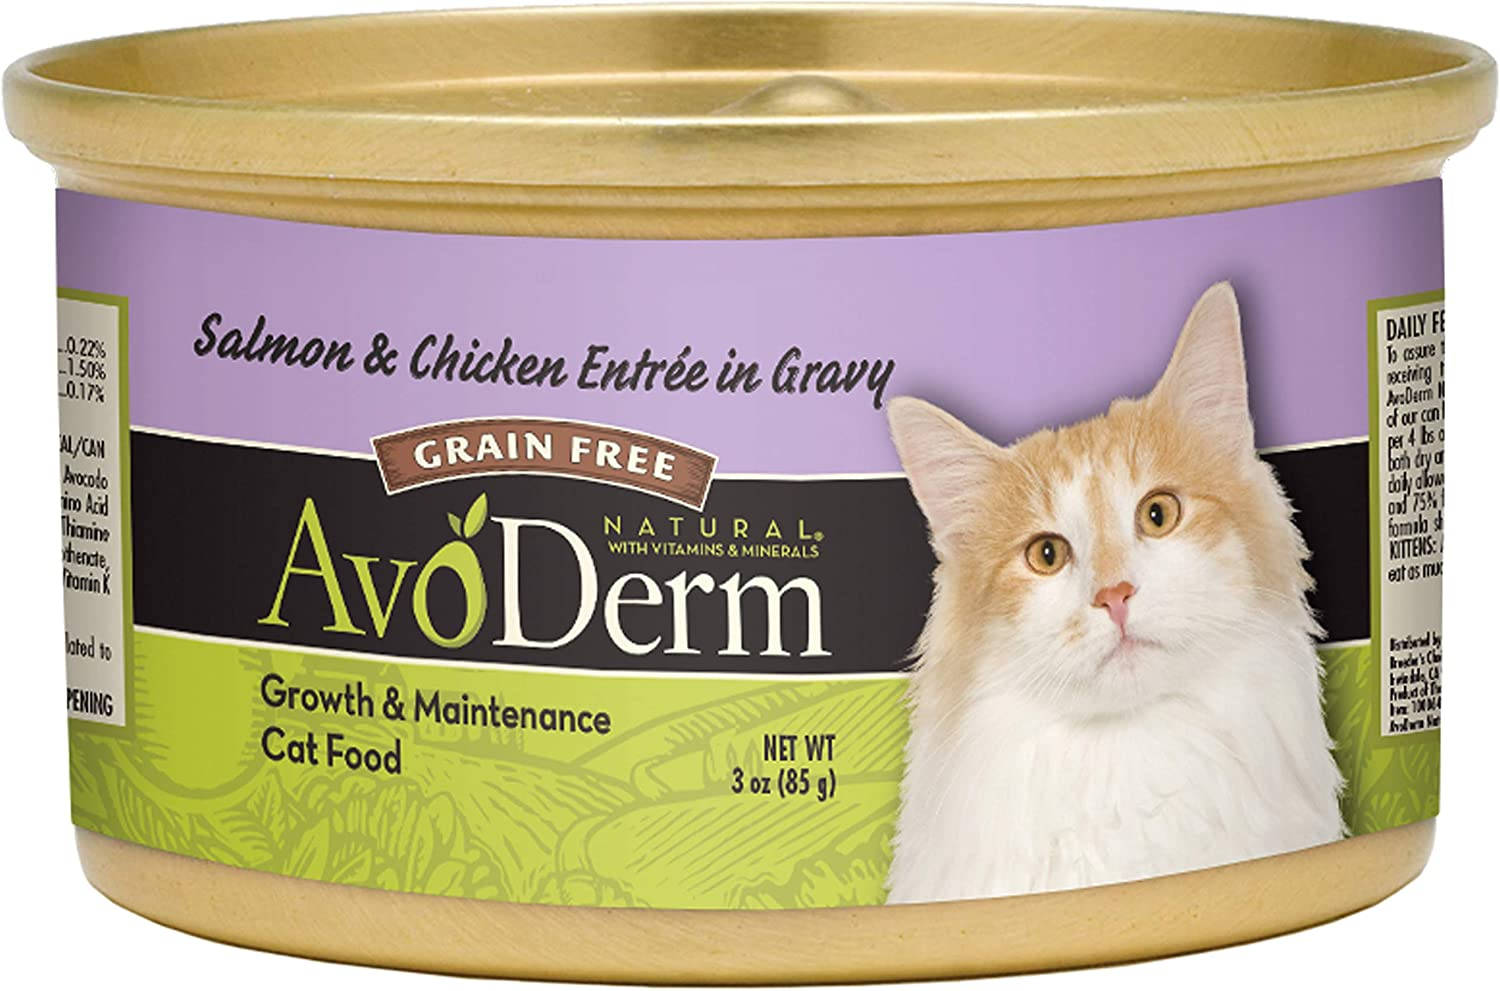 AvoDerm Natural Grain Free Salmon & Chicken Entrée in Gravy Wet Cat Food 3 oz